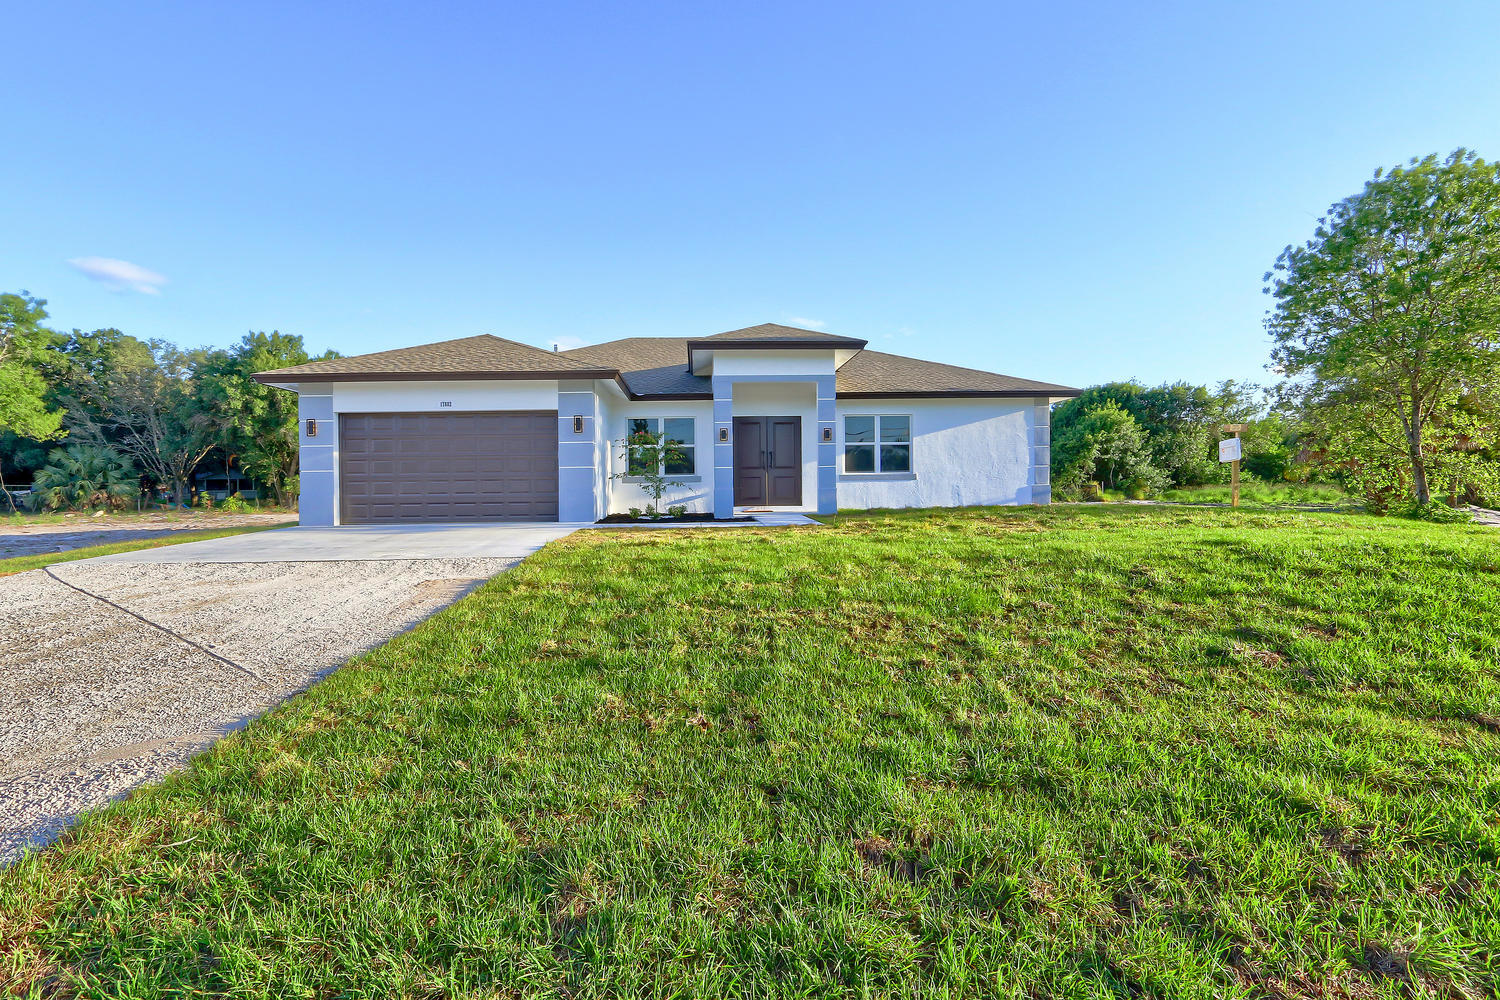 17844 38th Road N, Loxahatchee in Palm Beach County, FL 33470 Home for Sale